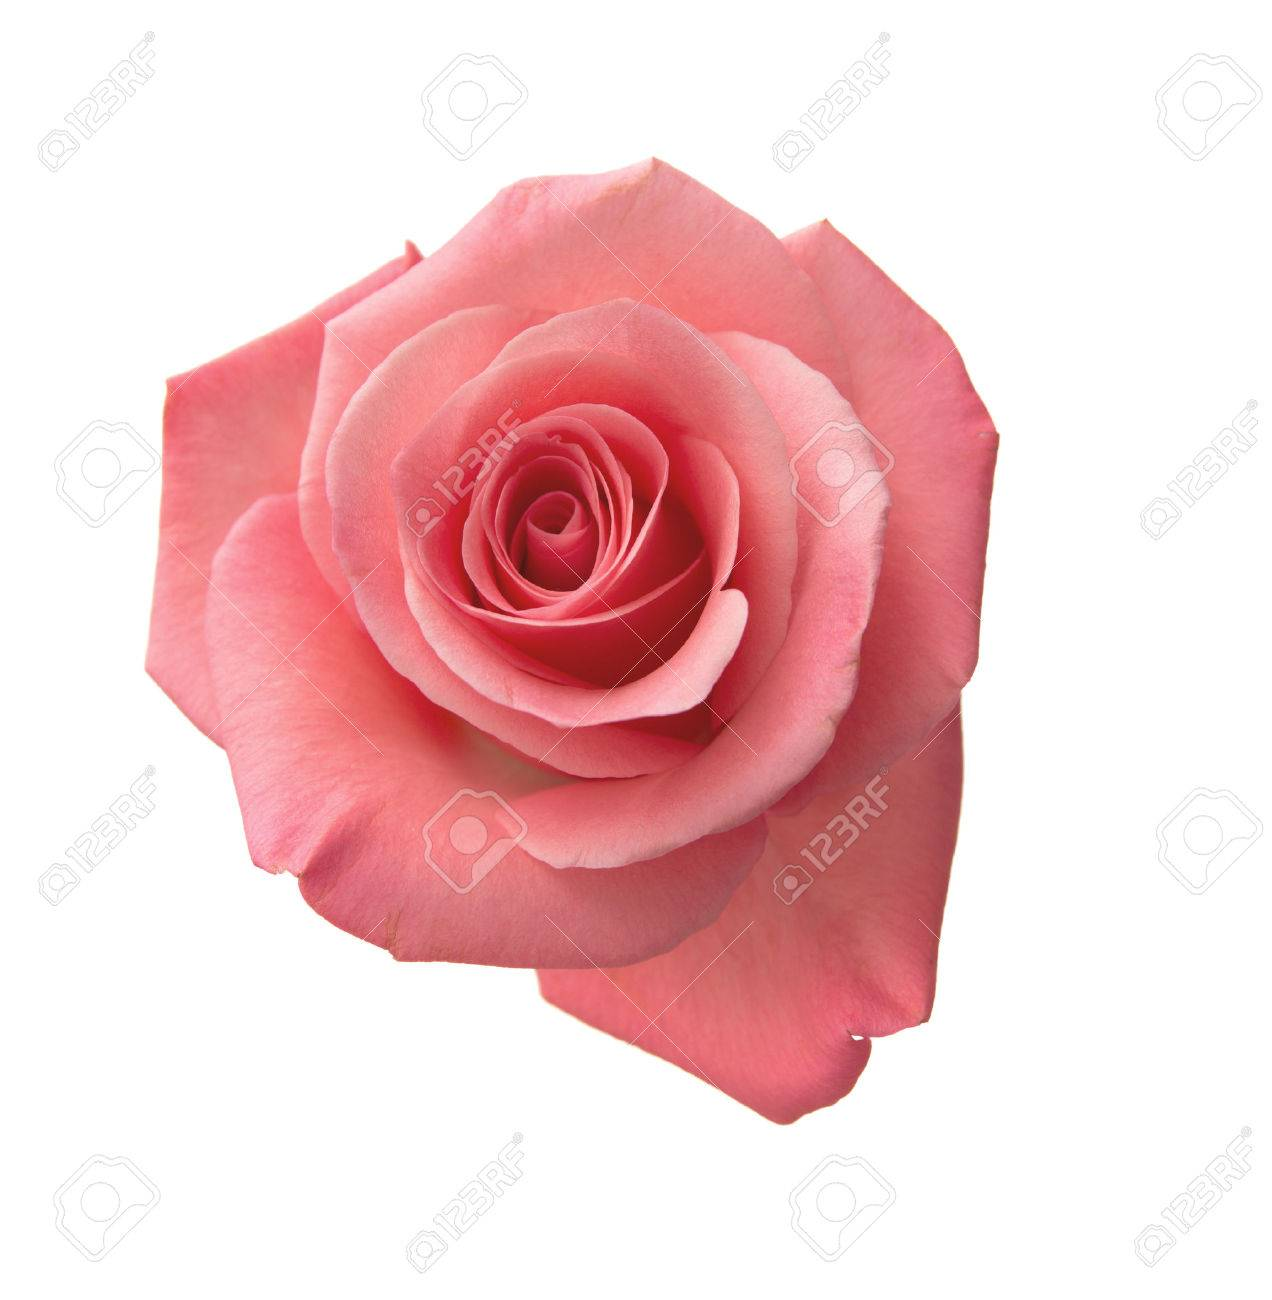 Gentle Pink Rose Isolated On White Background Stock Photo Picture